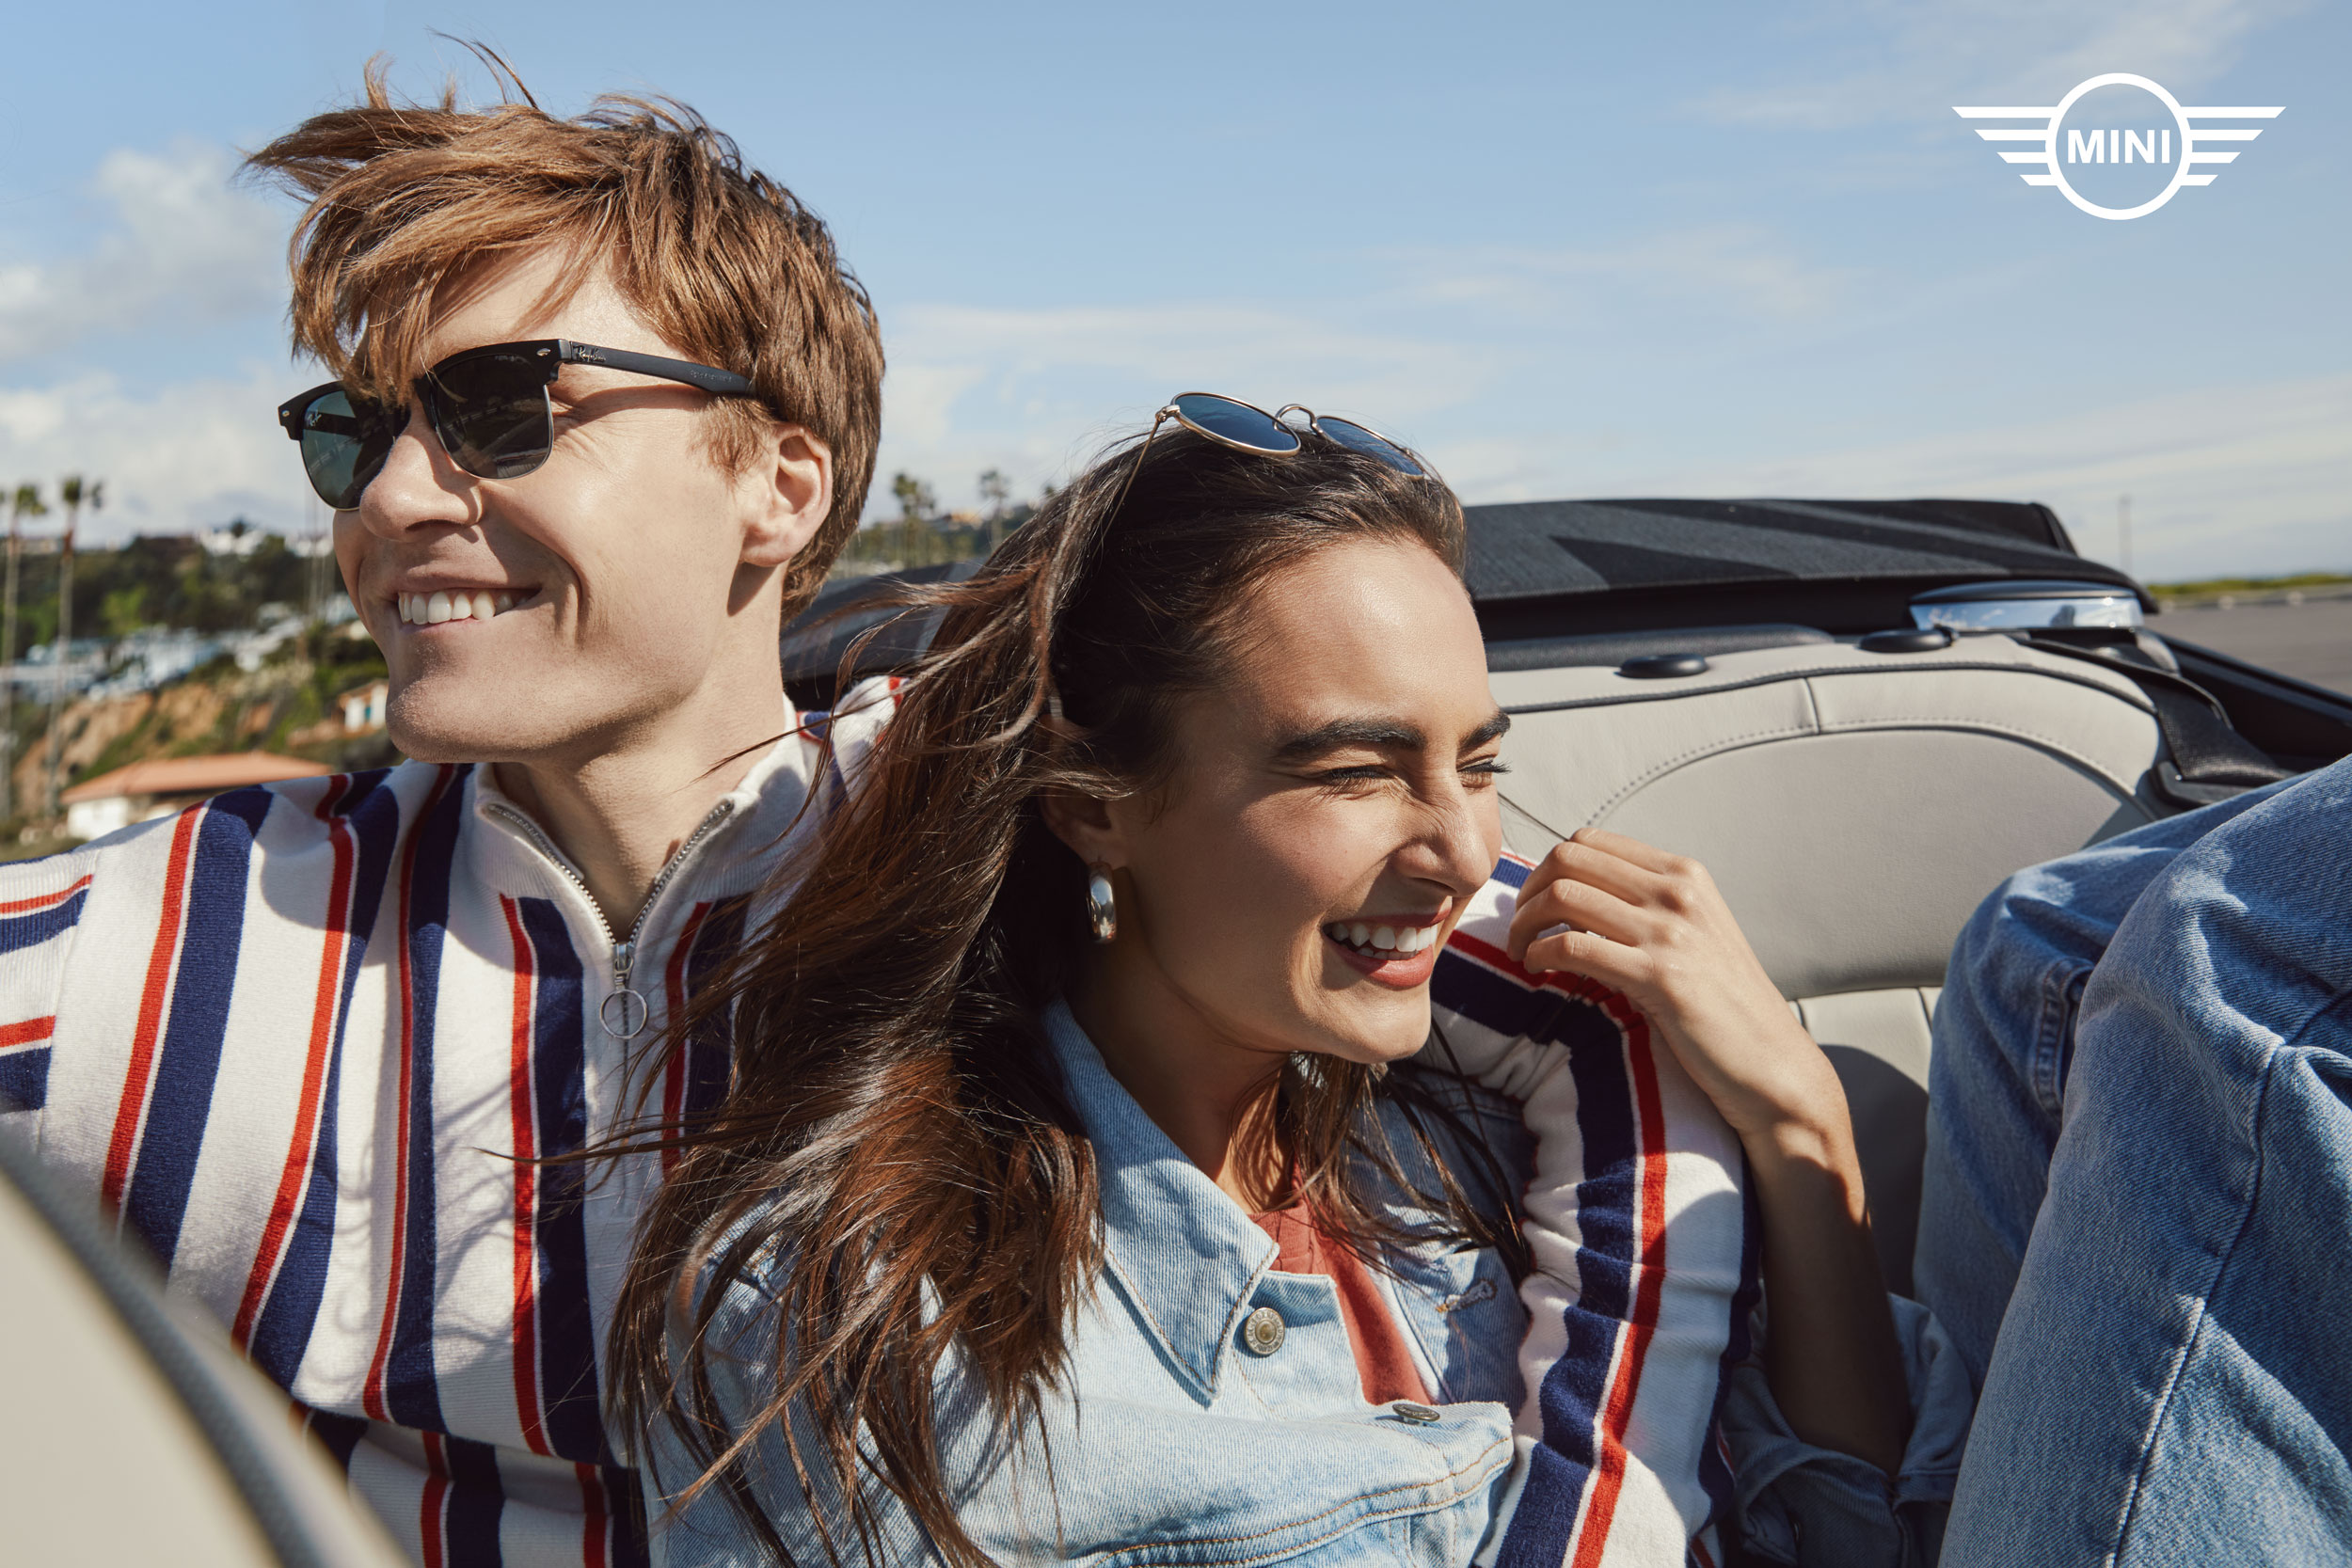 Millennial couple in the backseat of a convertible mini cooper - Kimberly Genevieve Los Angeles Advertising Photographer